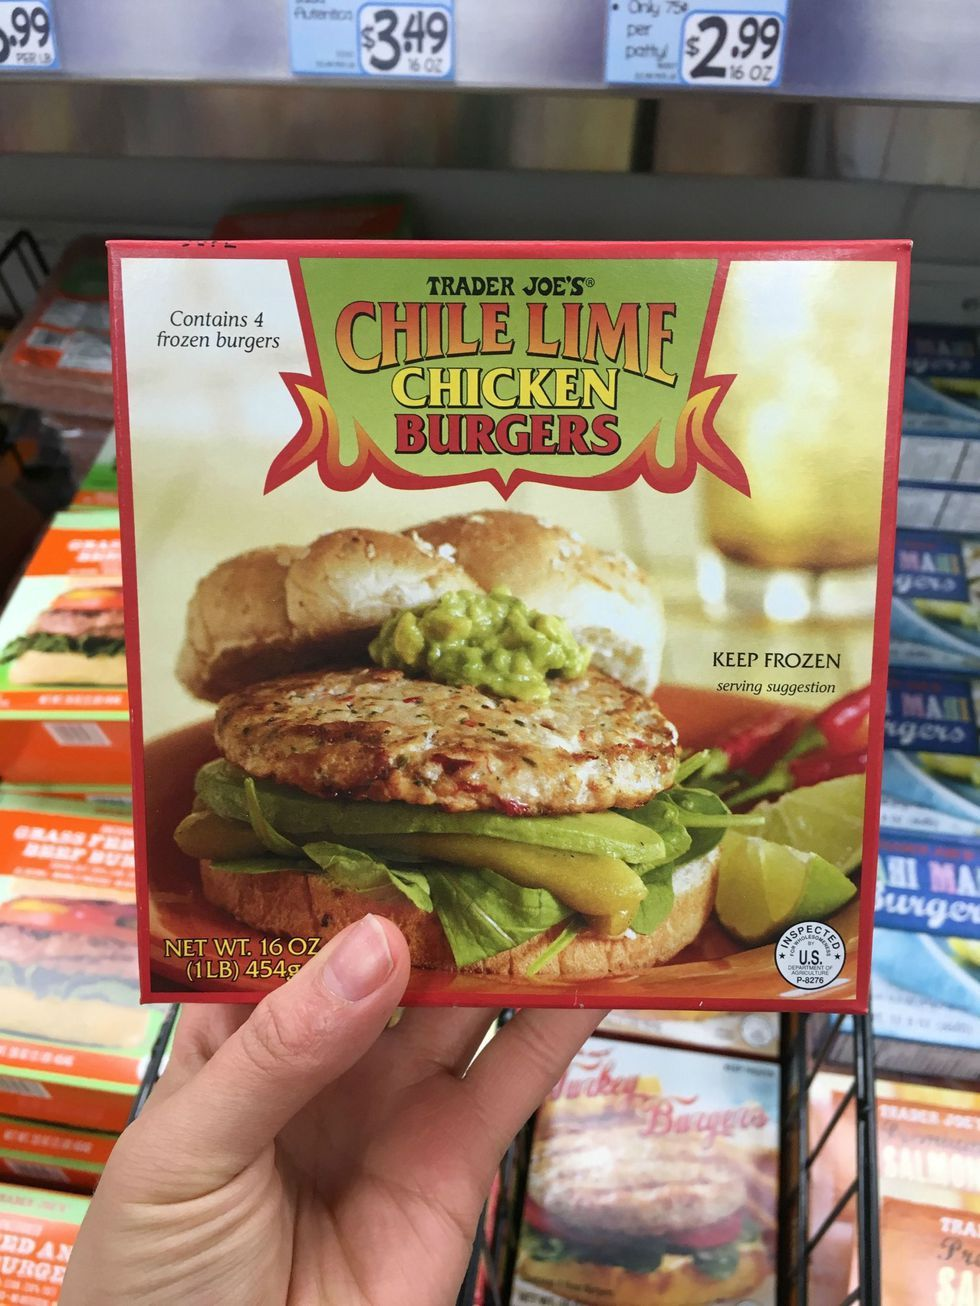 24 Low Carb Frozen Foods You Have To Try At Trader Joe S Trader Joes Recipes Healthy Trader Joes Food Trader Joes Frozen Food